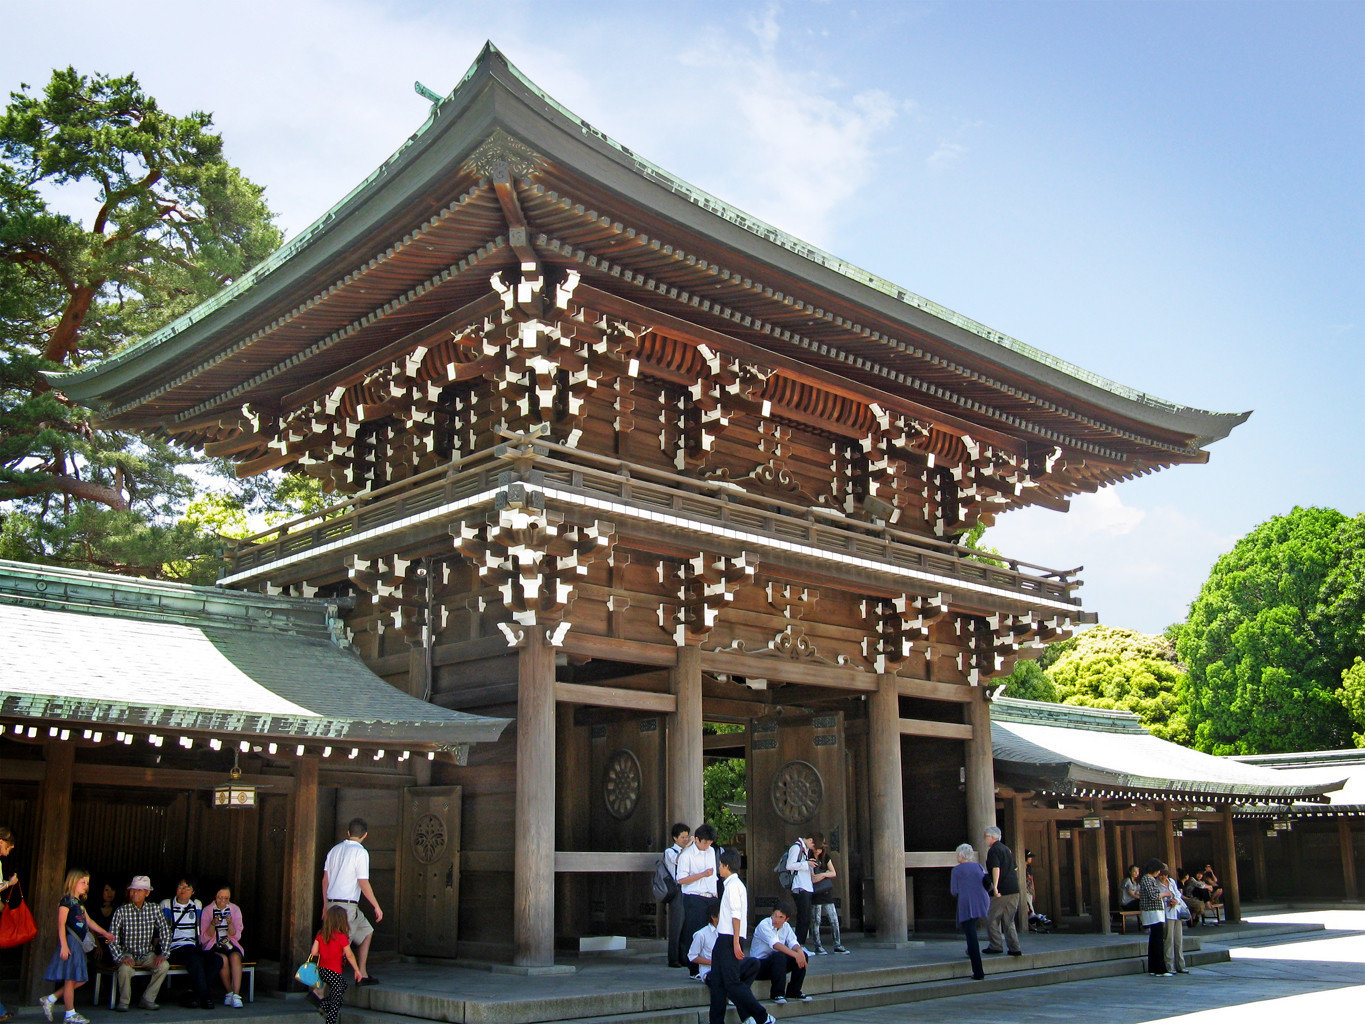 City Cultural Entertainment Resort Scenic views sky building outdoor chinese architecture historic site temple shinto shrine landmark people place of worship shrine palace tourism pagoda plaza square walkway